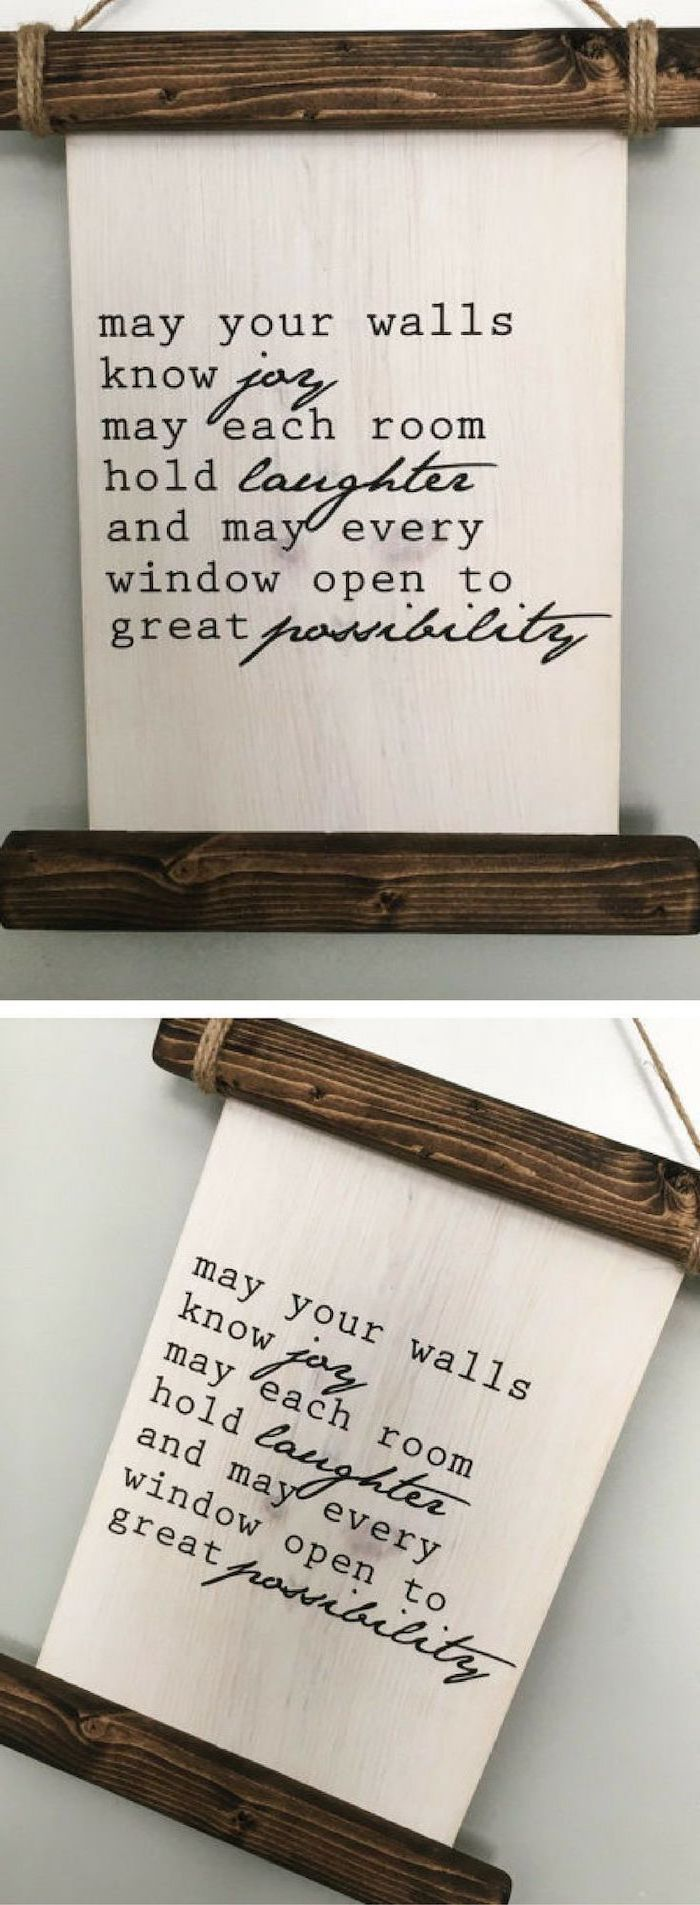 wooden board, good wishes, written on it, personalized housewarming gifts